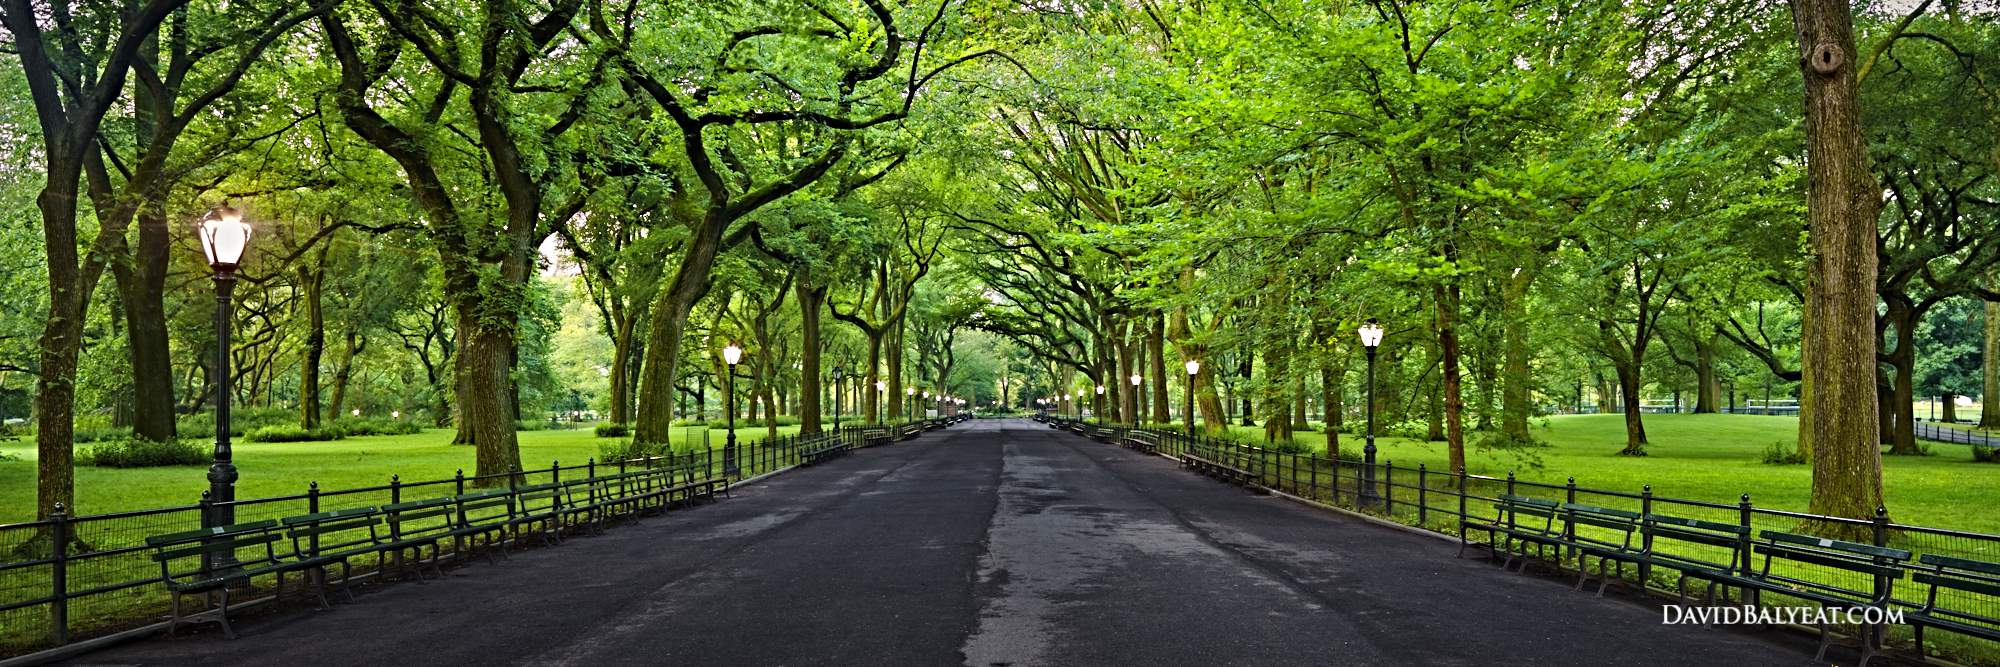 City escape central park david balyeat photography for Professional landscape